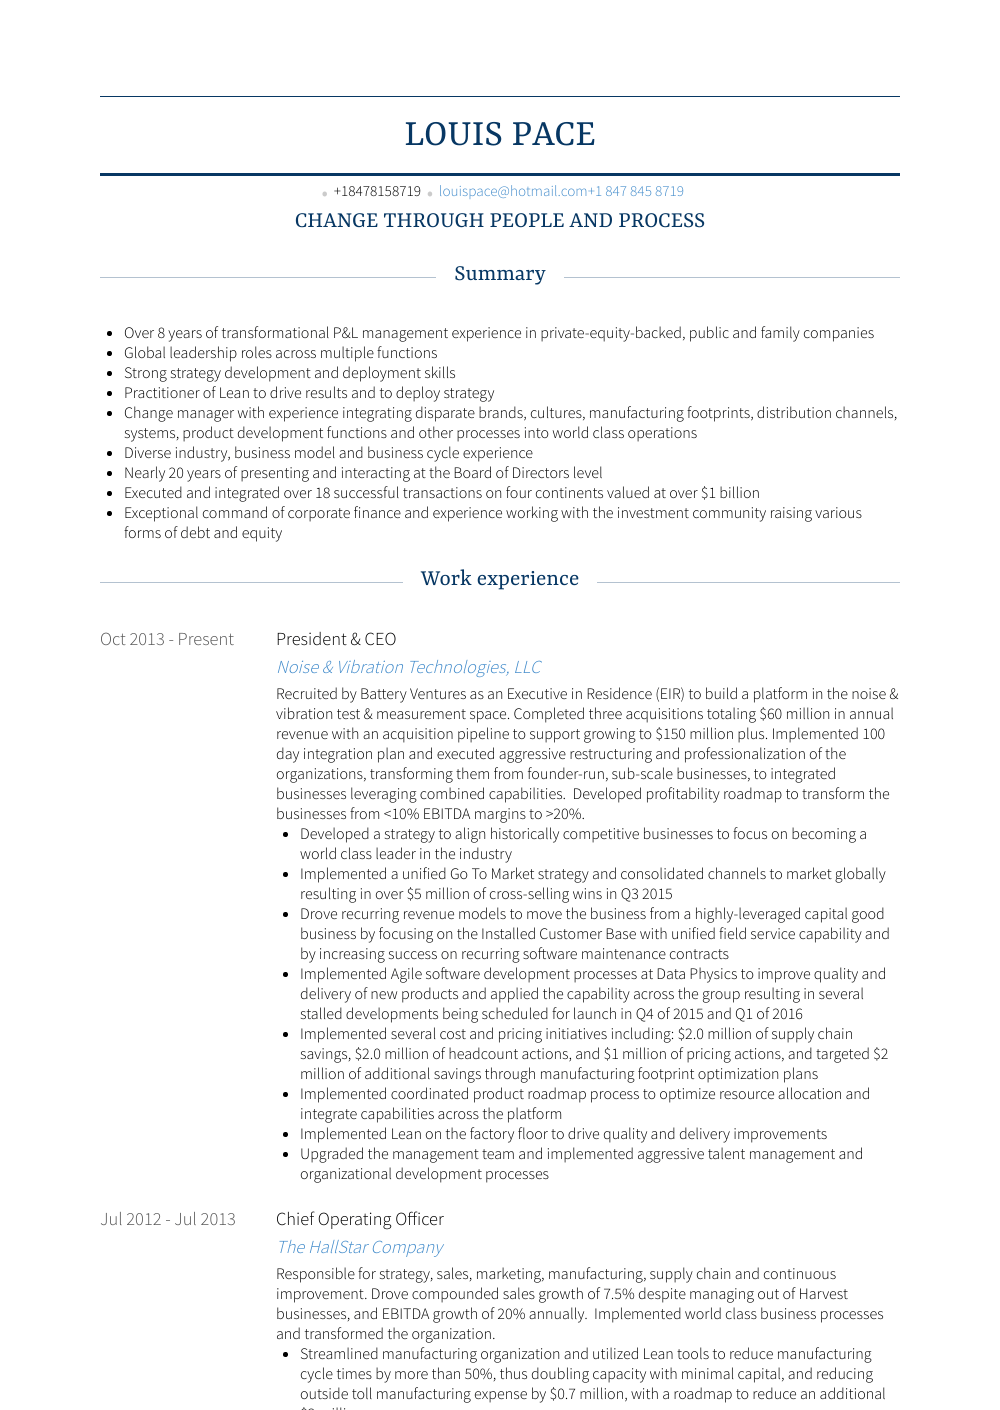 Chief Operating Officer Resume Best Of Chief Operating